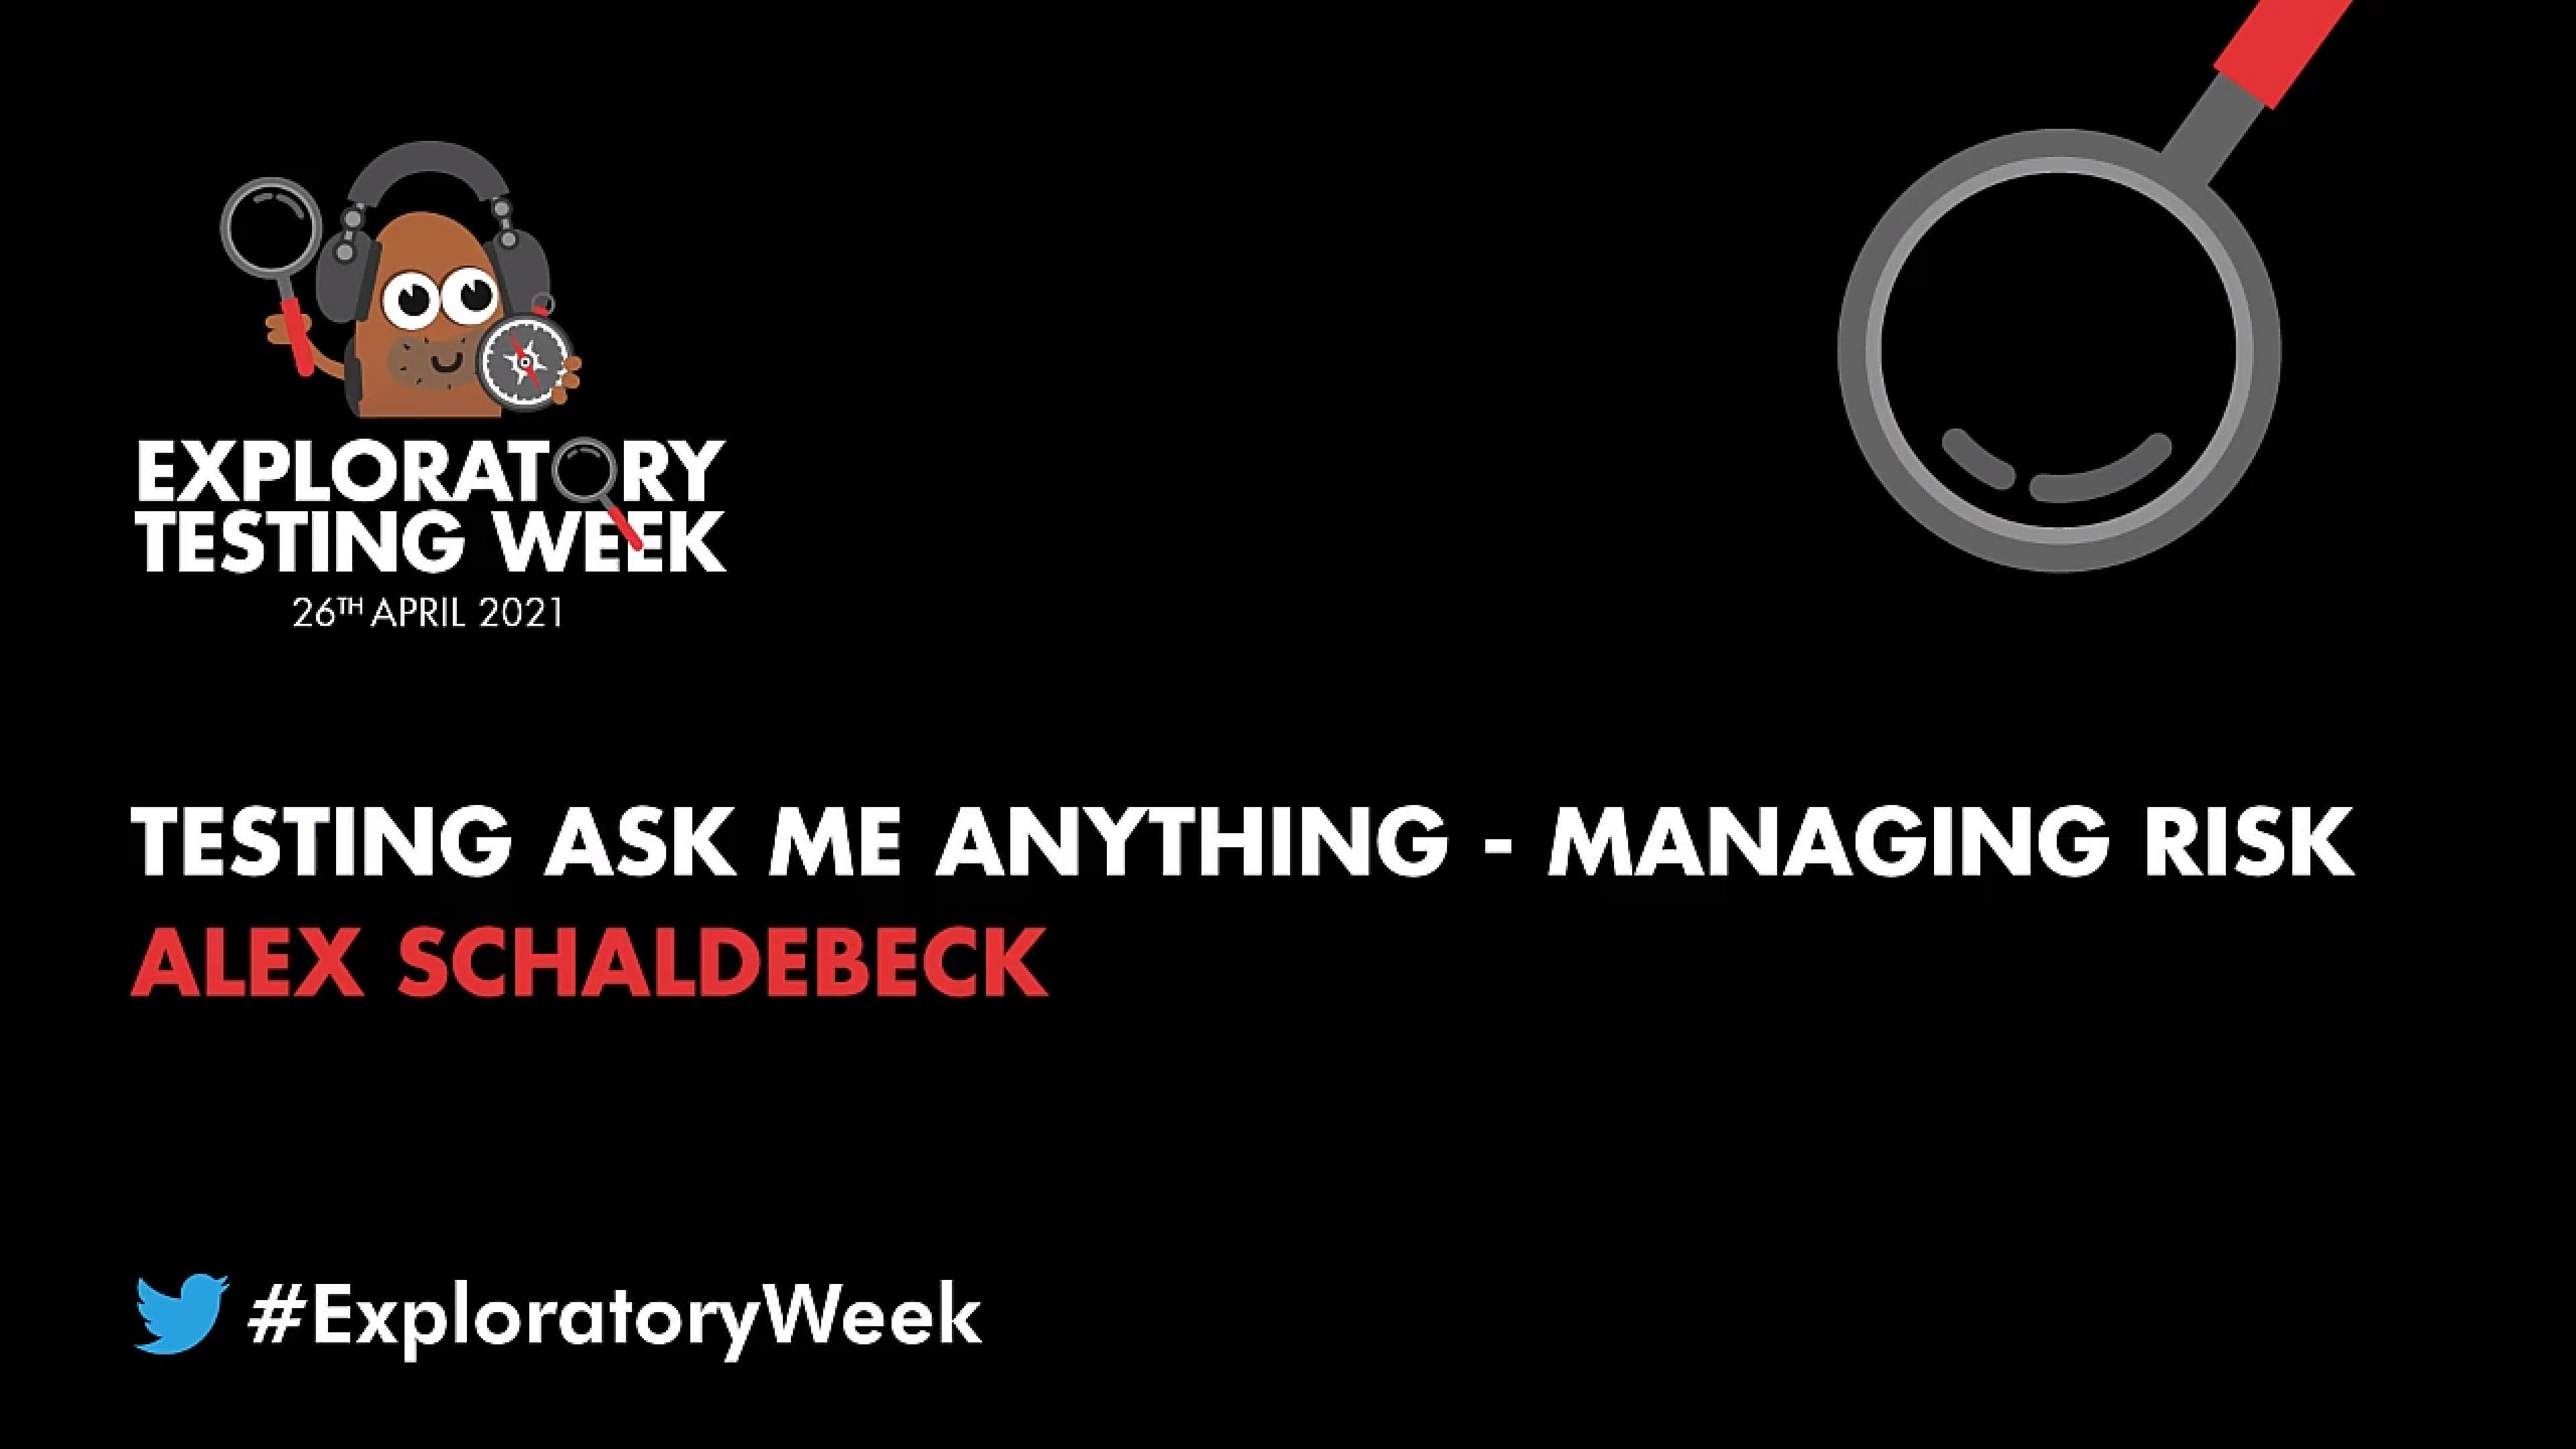 Testing Ask Me Anything: Managing Risk with Alex Schladebeck